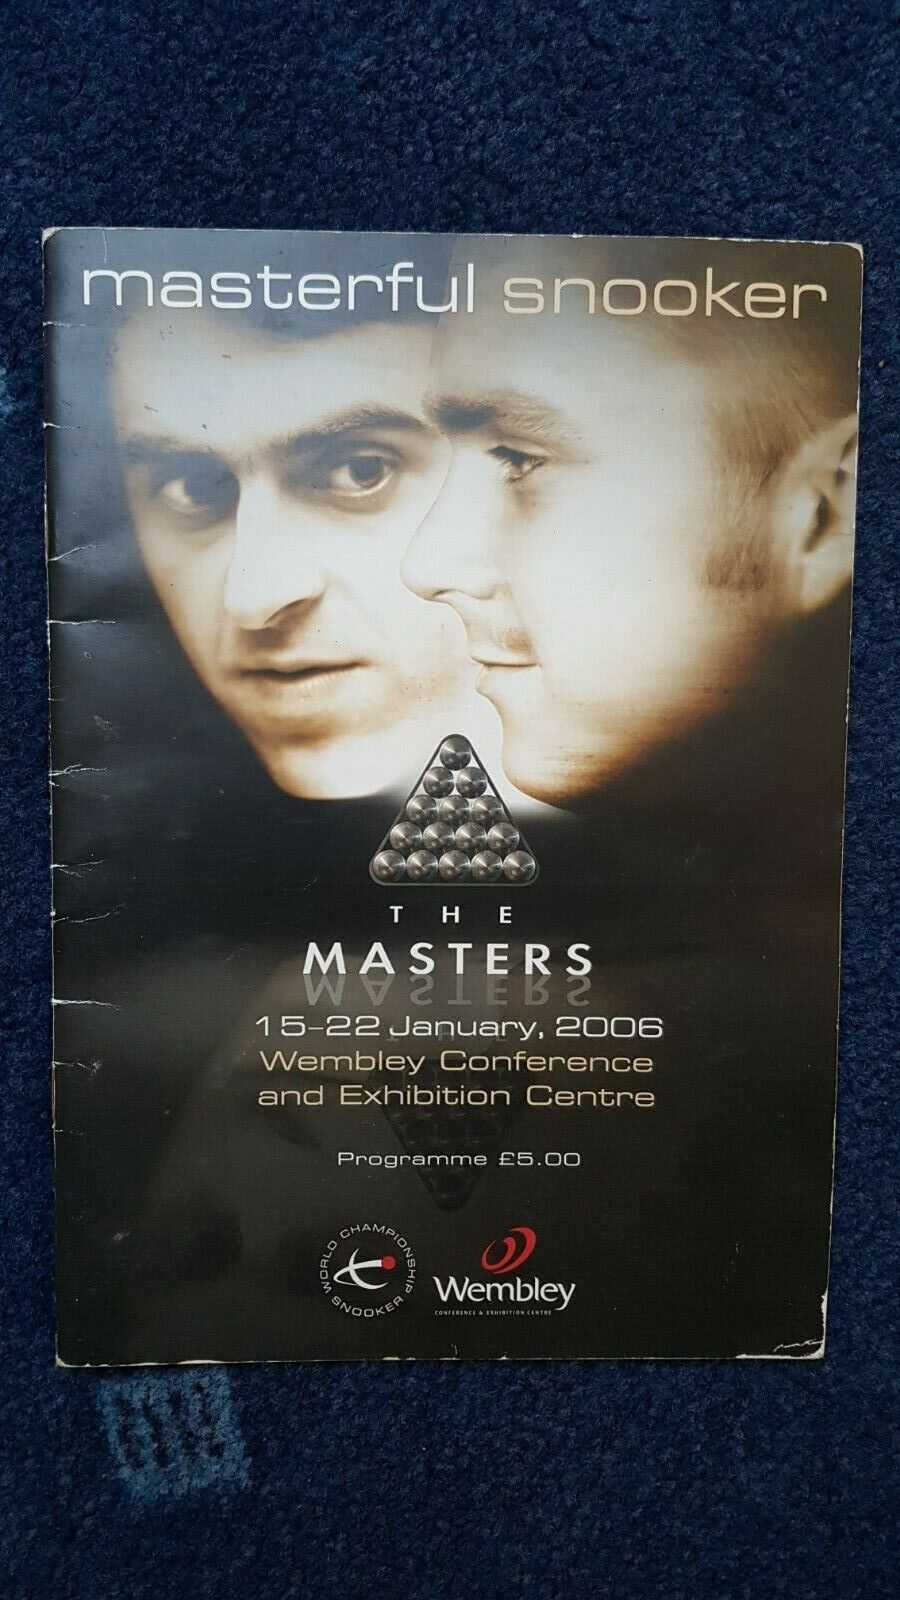 Masters Snooker 2006 Programme - Signed by Shaun Murphy